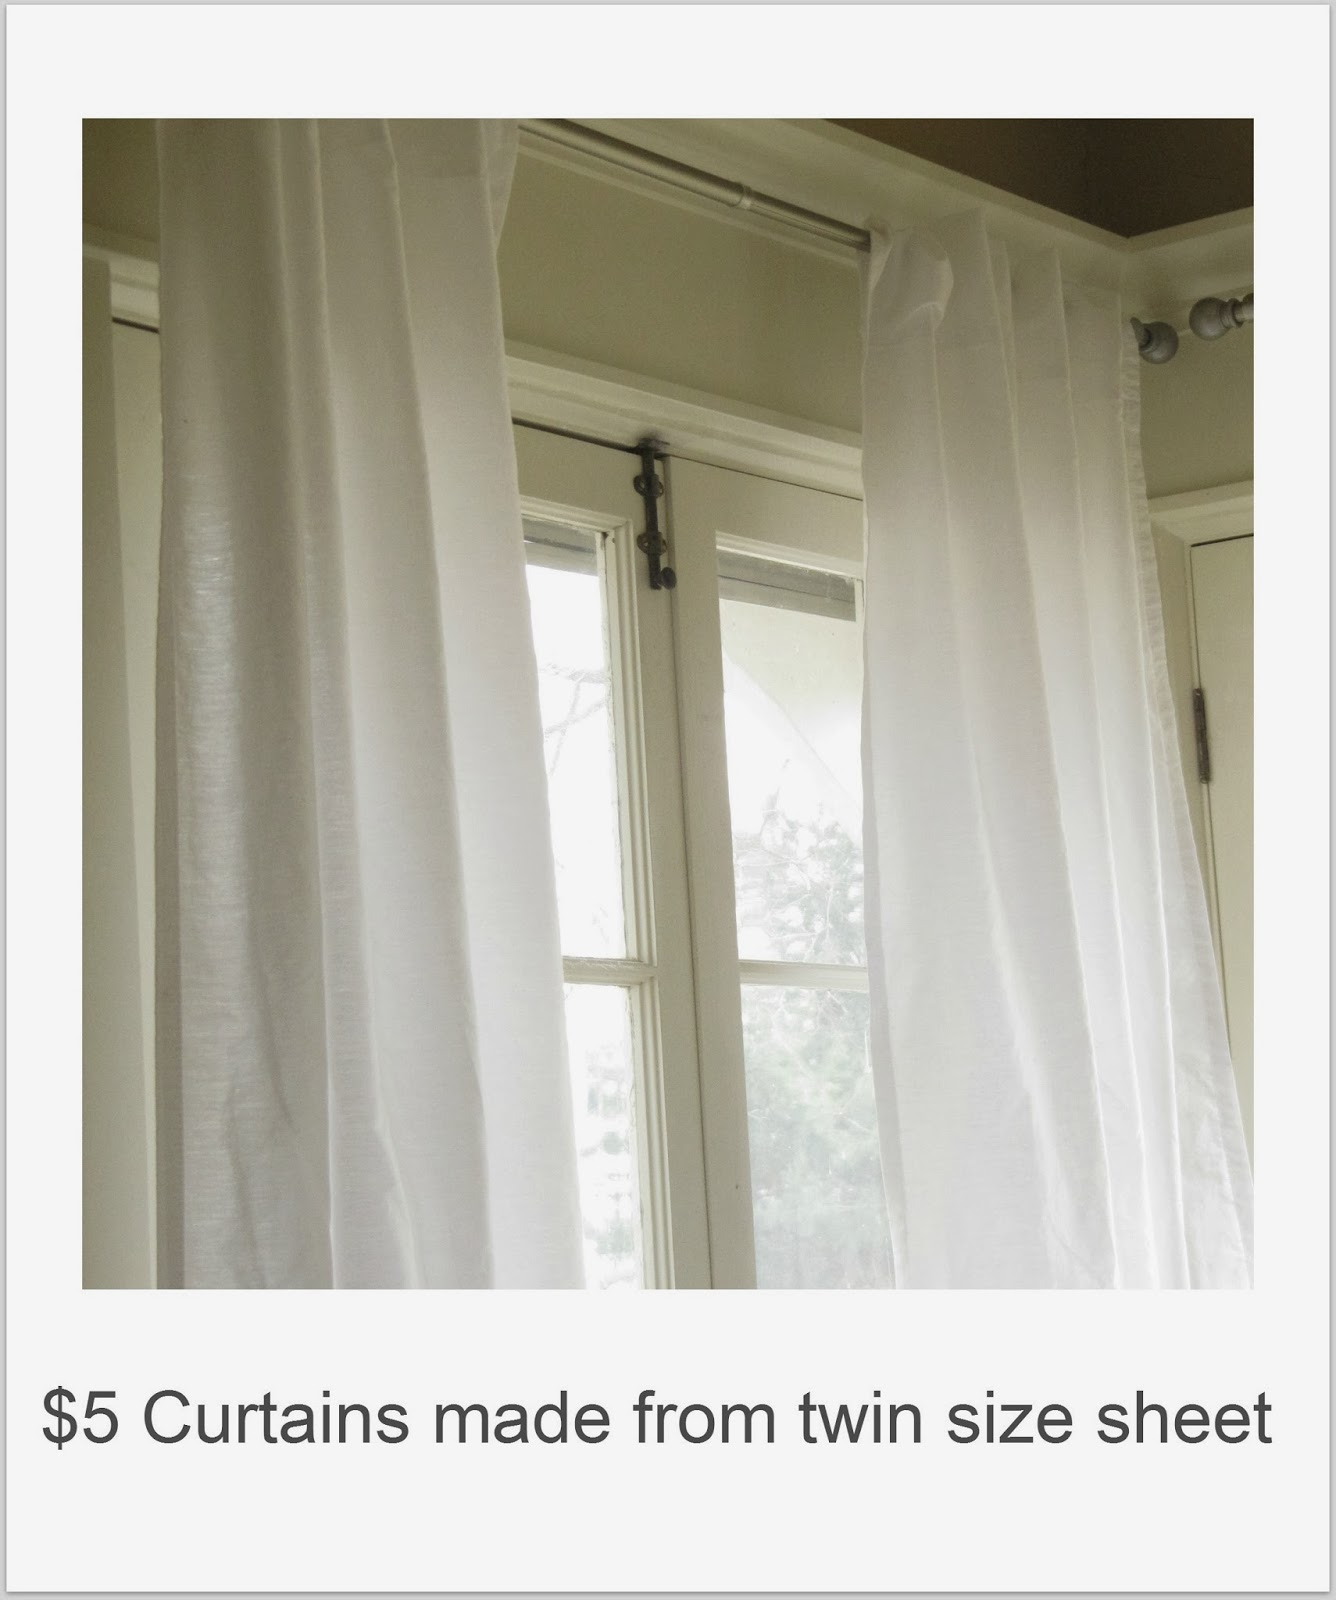 http://thewickerhouse.blogspot.com/2013/04/5-curtains.html